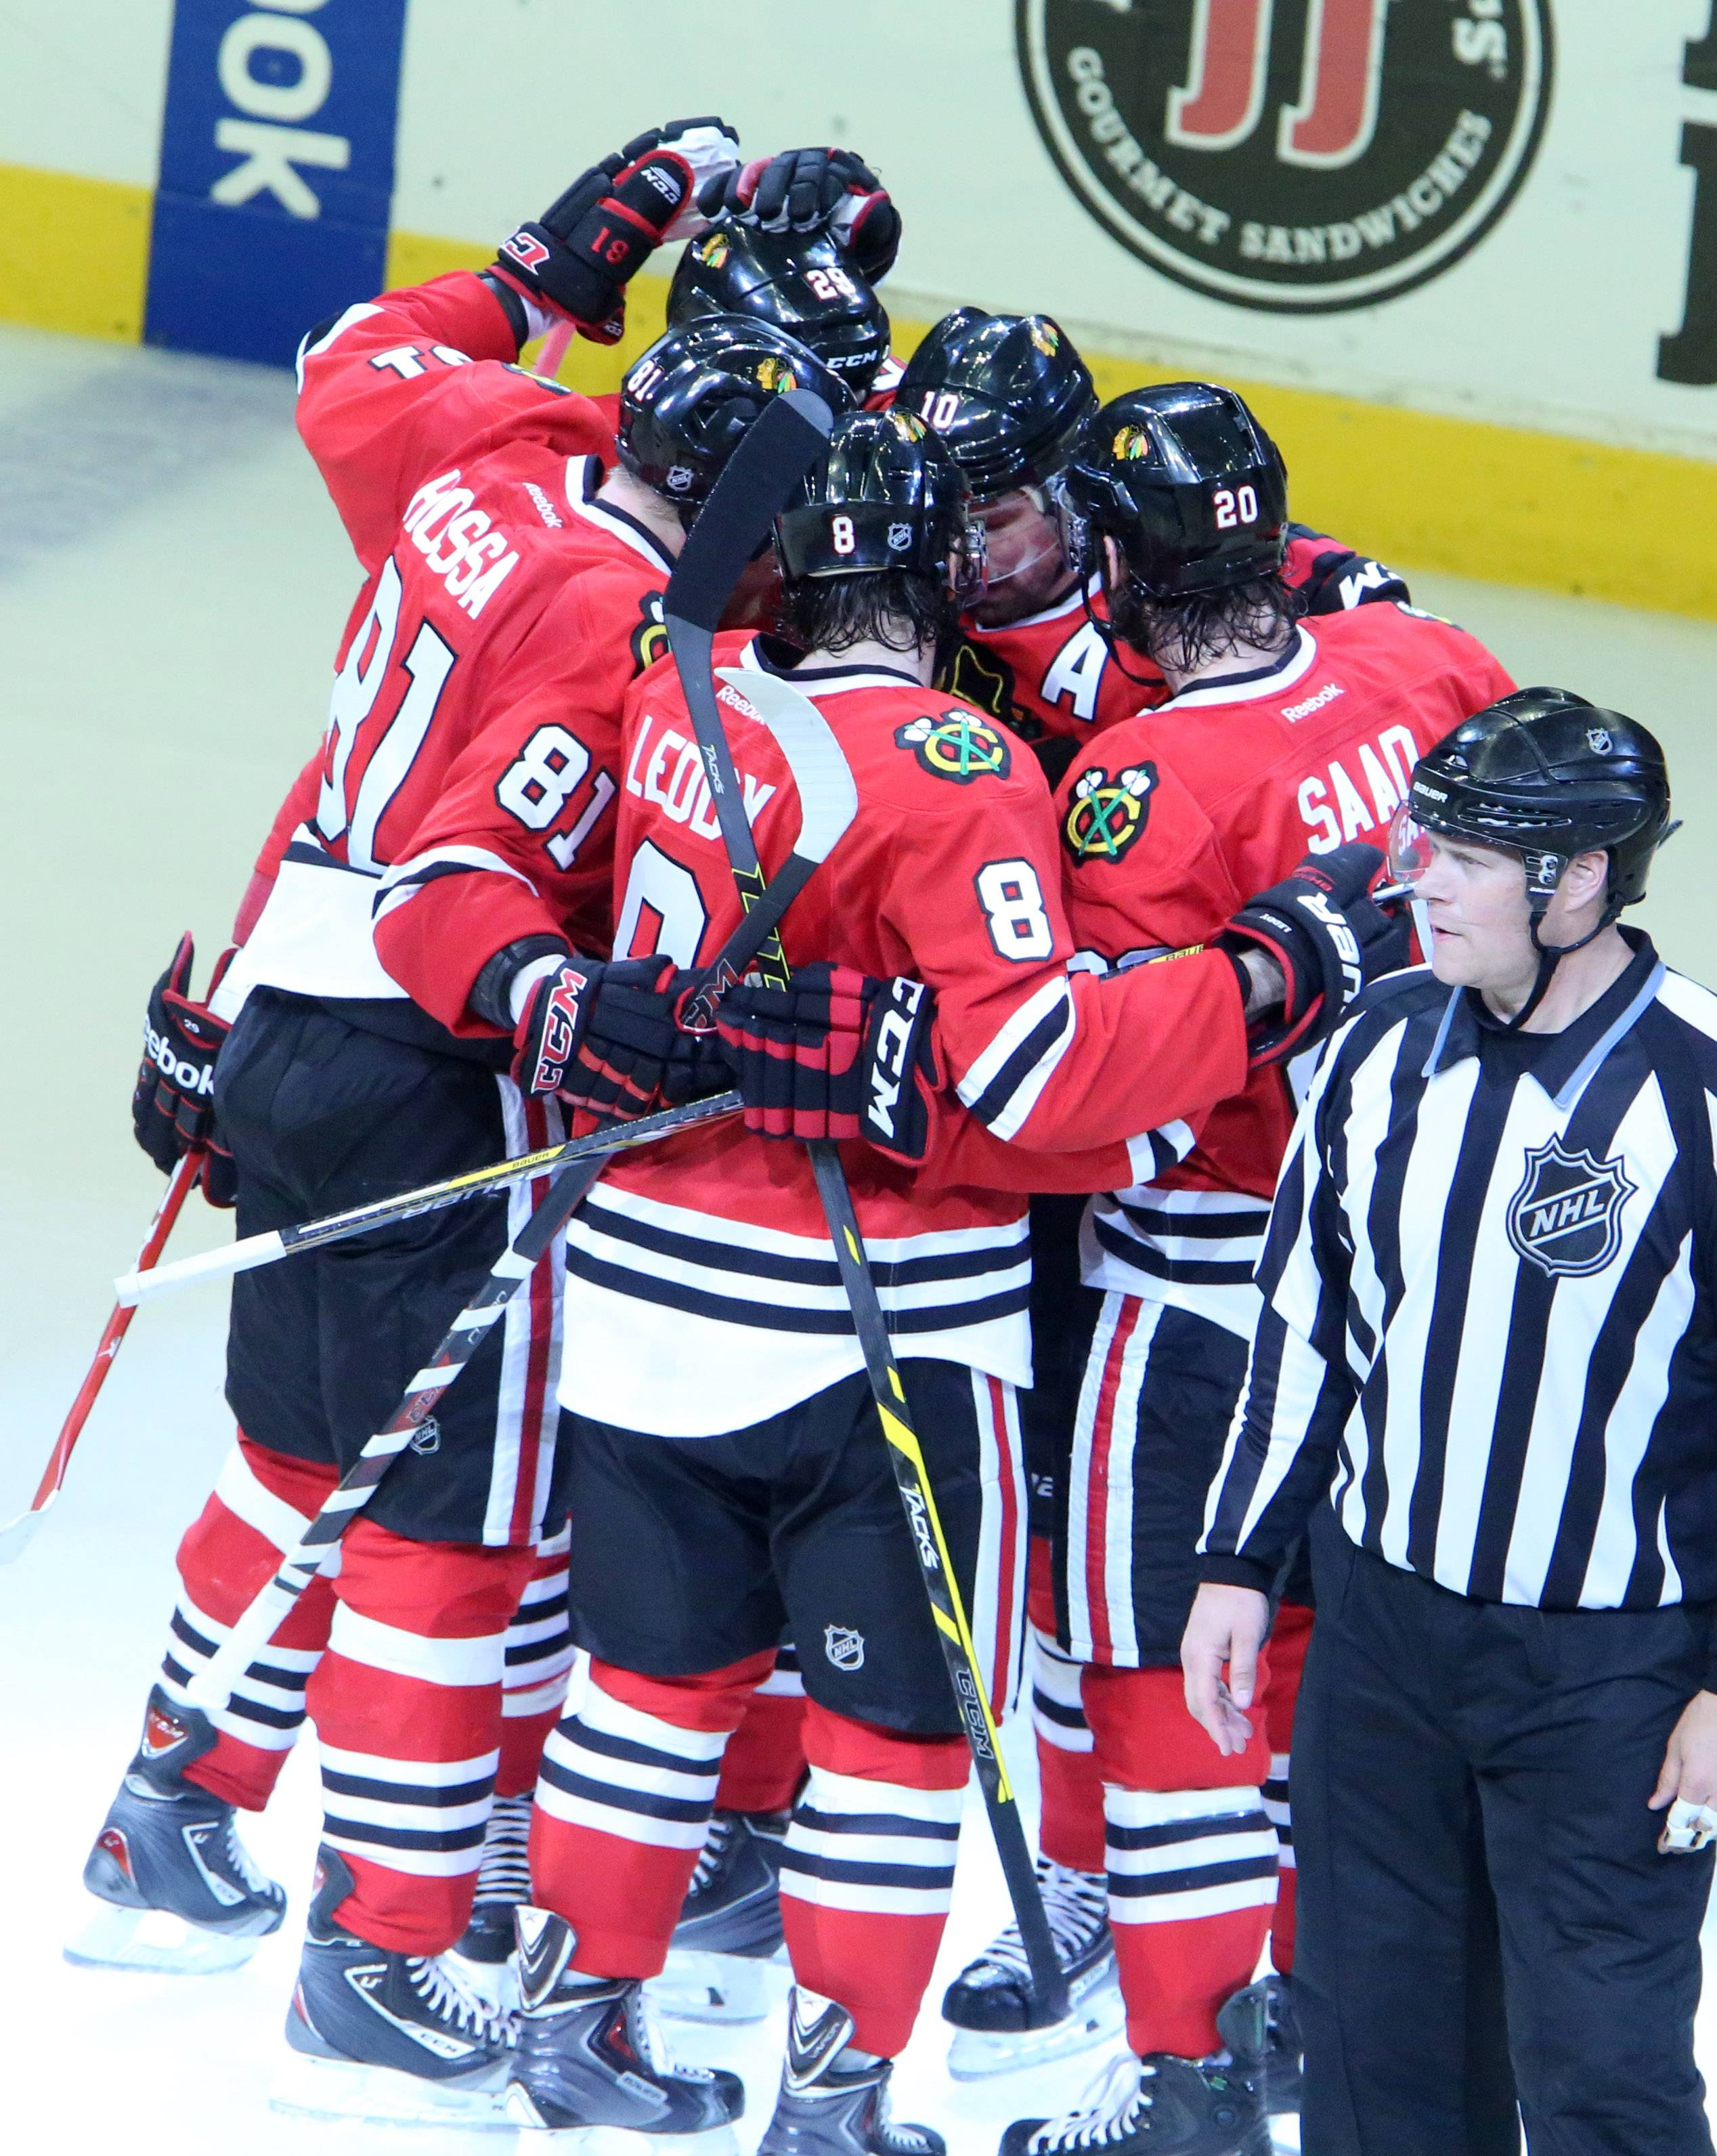 Chicago Blackhawks celebrate a goal by left wing Patrick Sharp in the second period of Game 7 of the Western Conference finals Sunday at the United Center in Chicago.